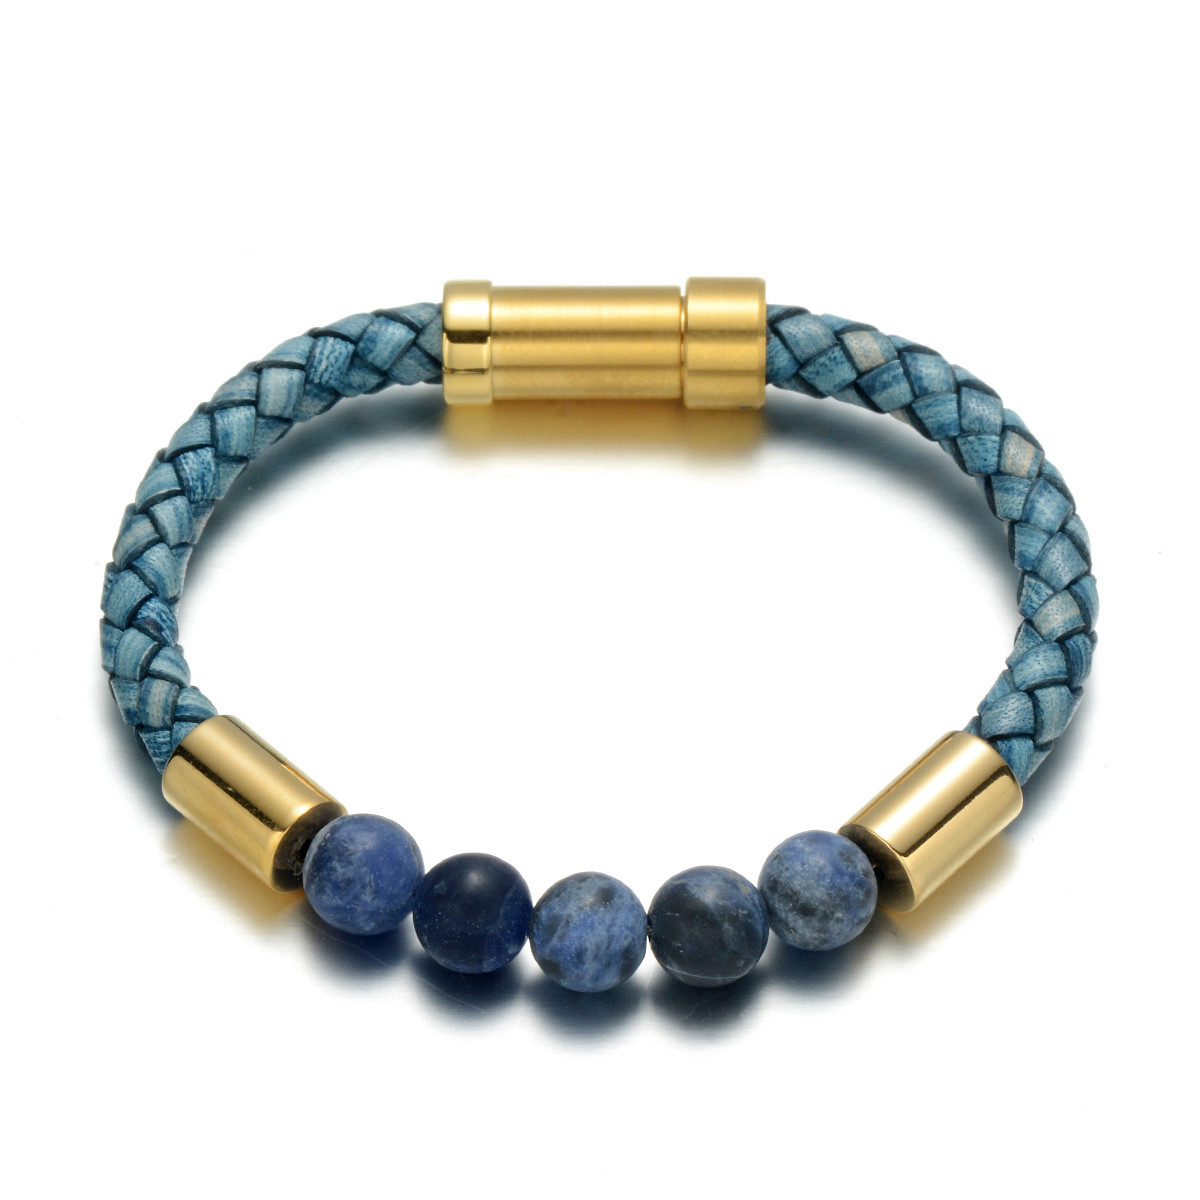 Blue-Veins Natural Stone Braided Leather Charm Bracelet Leather Bracelets Mens Bracelets